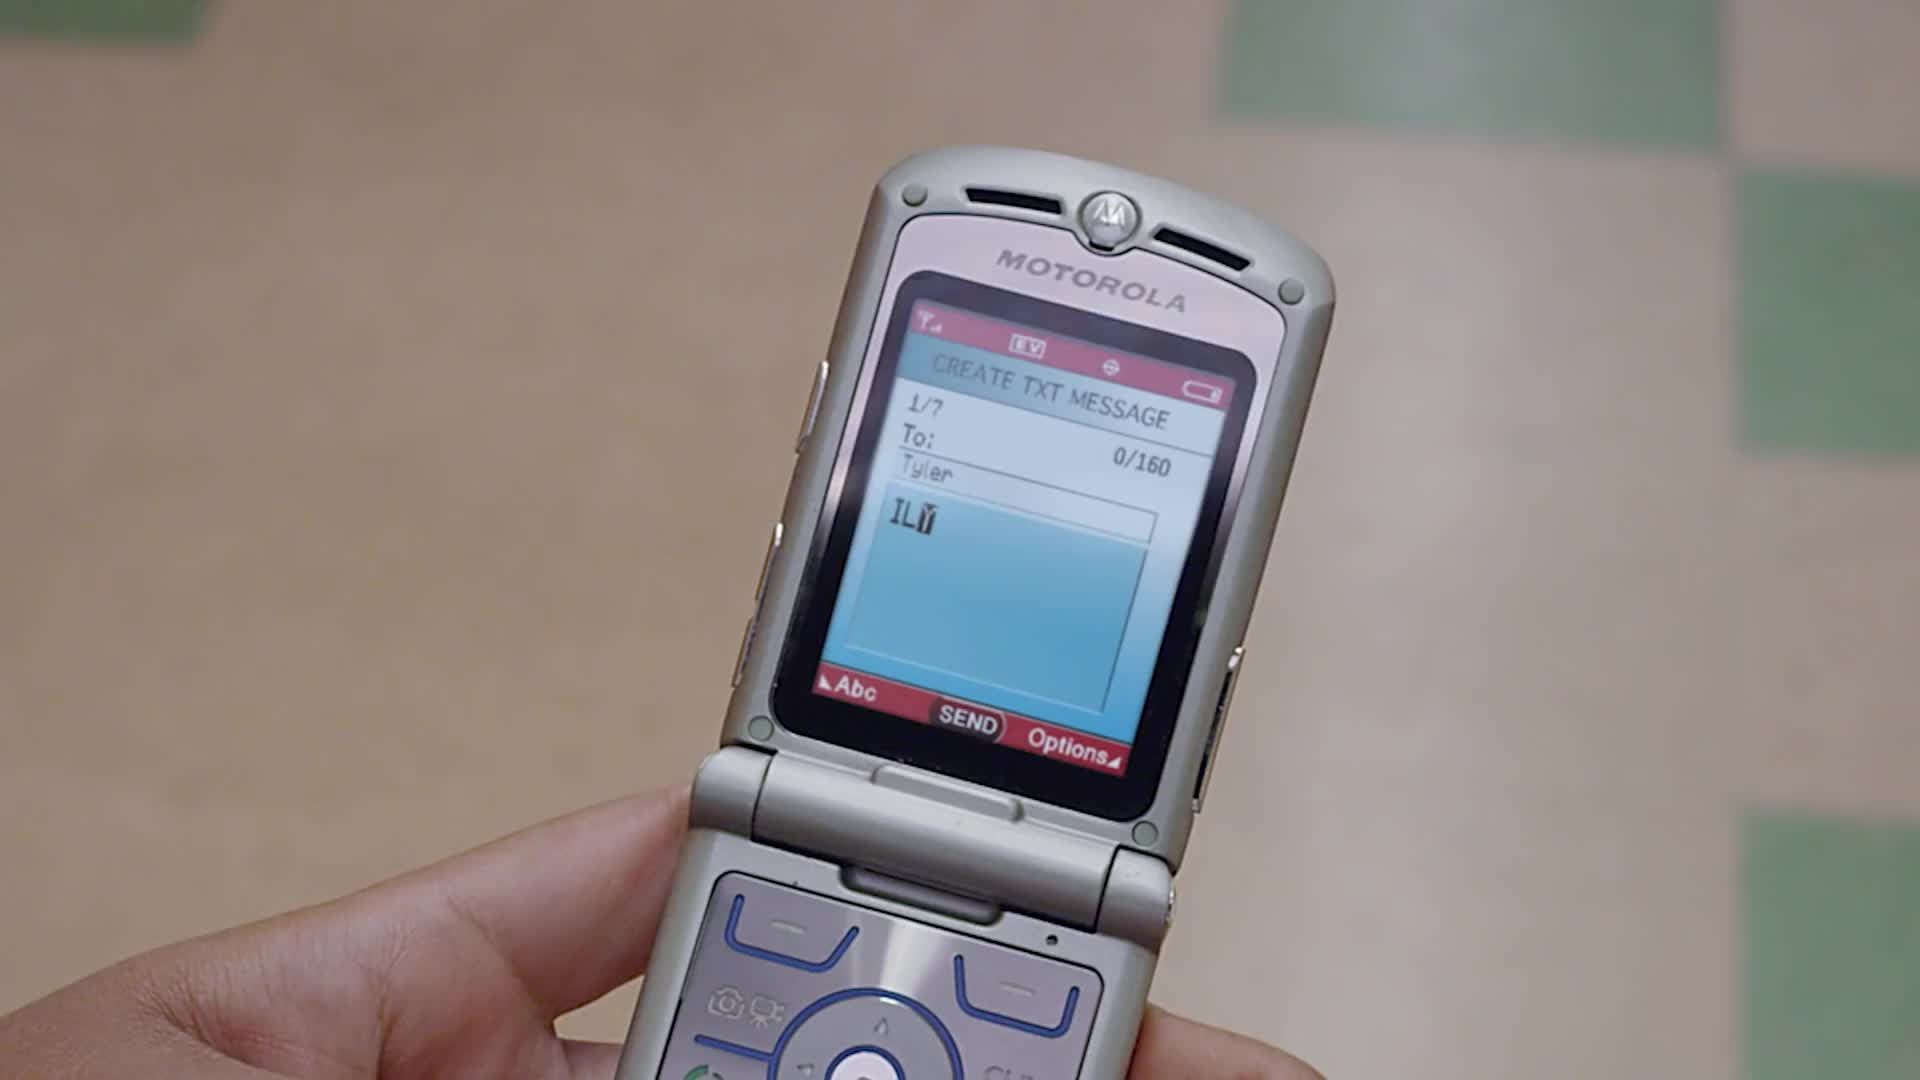 Motorola is working on a new Razr smartphone